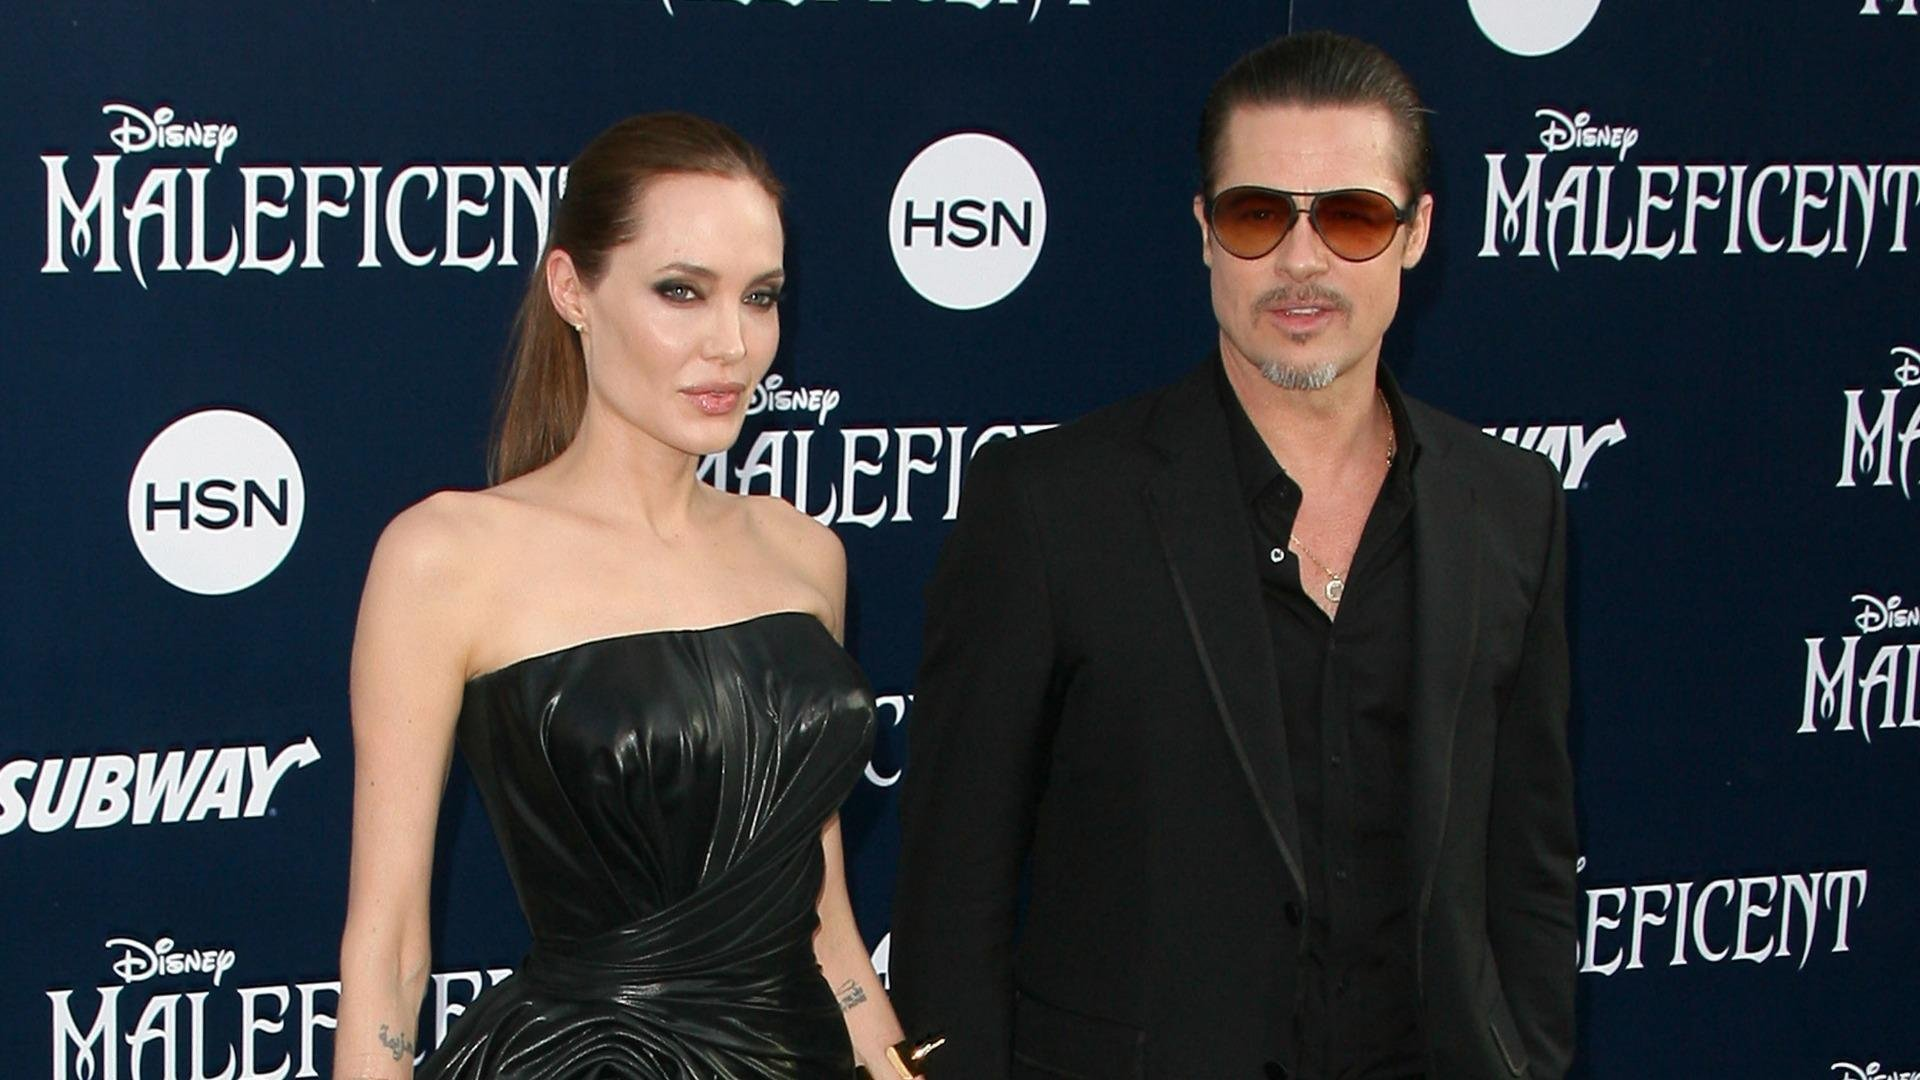 Brad Pitt and Angelina Jolie tie the knot